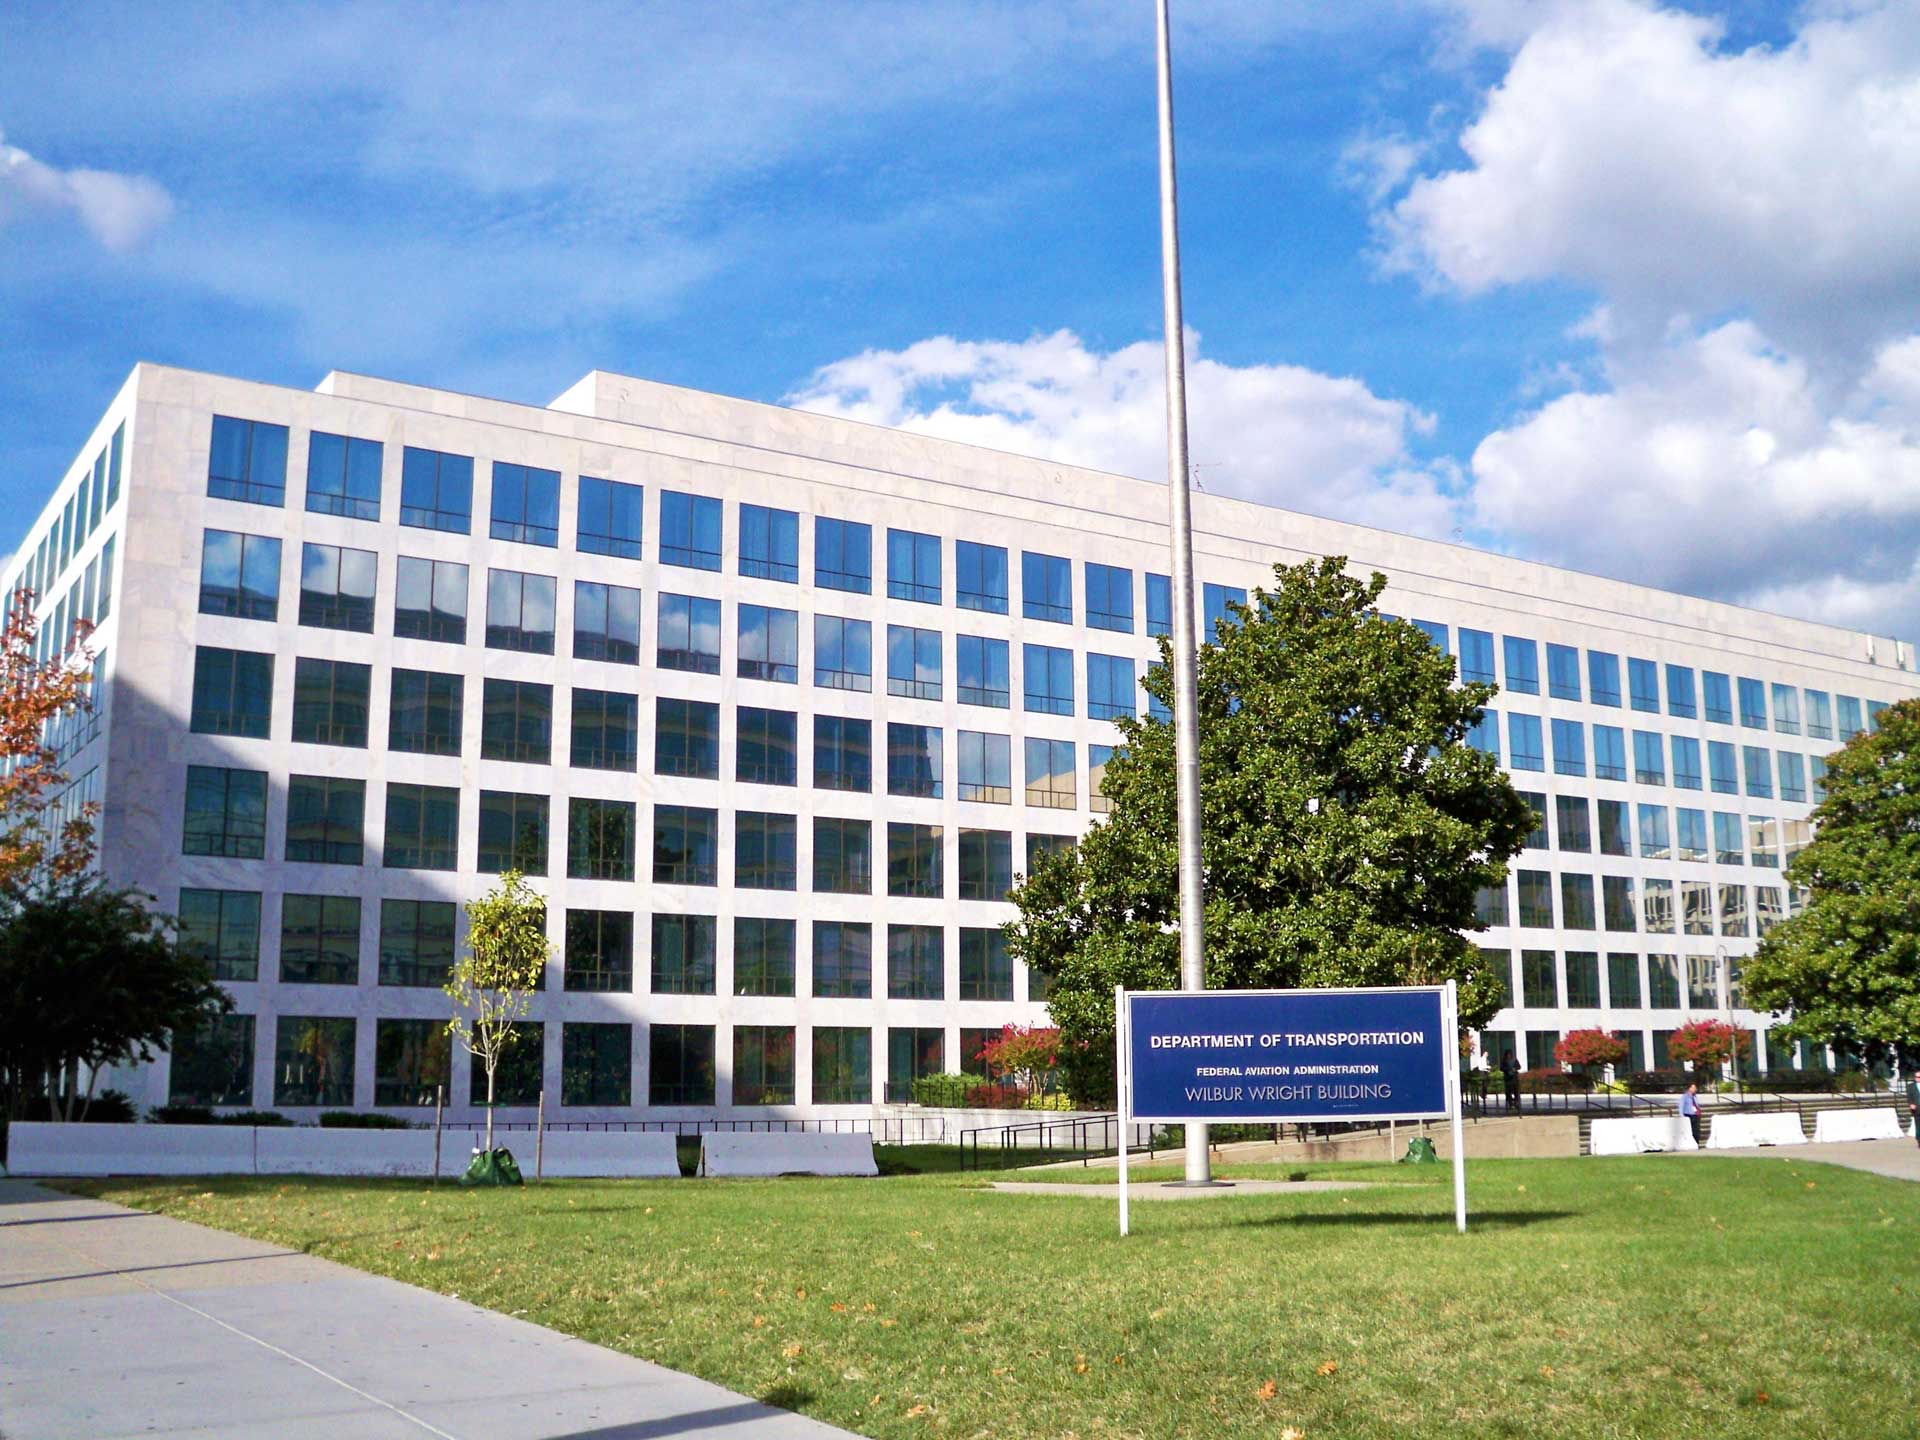 2016-02/dot-faa-headquarters-by-matthew-bisanz.jpg